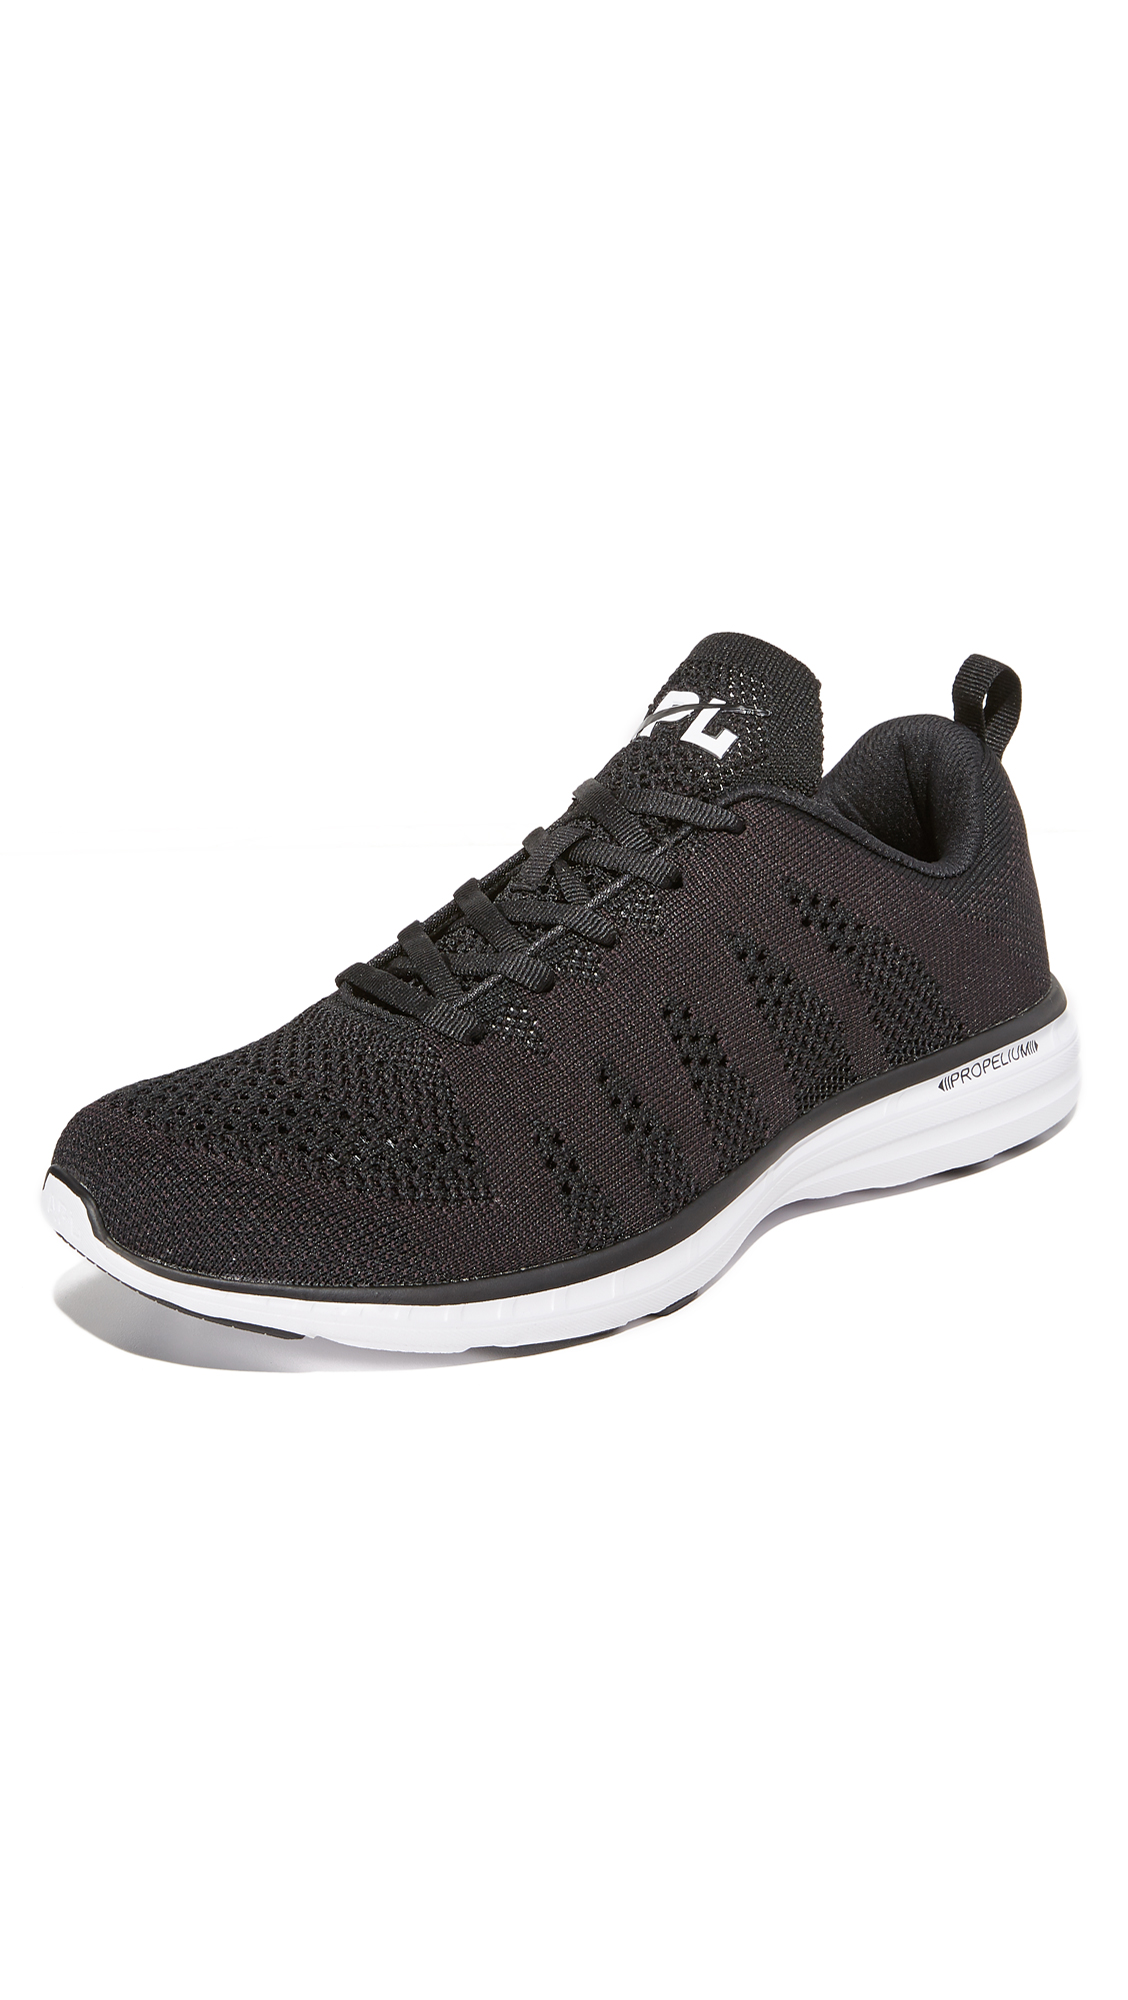 APL Athletic Propulsion Labs Athletic Propulsion Labs Men's Techloom Pro Lace Up Sneakers KnauQdo